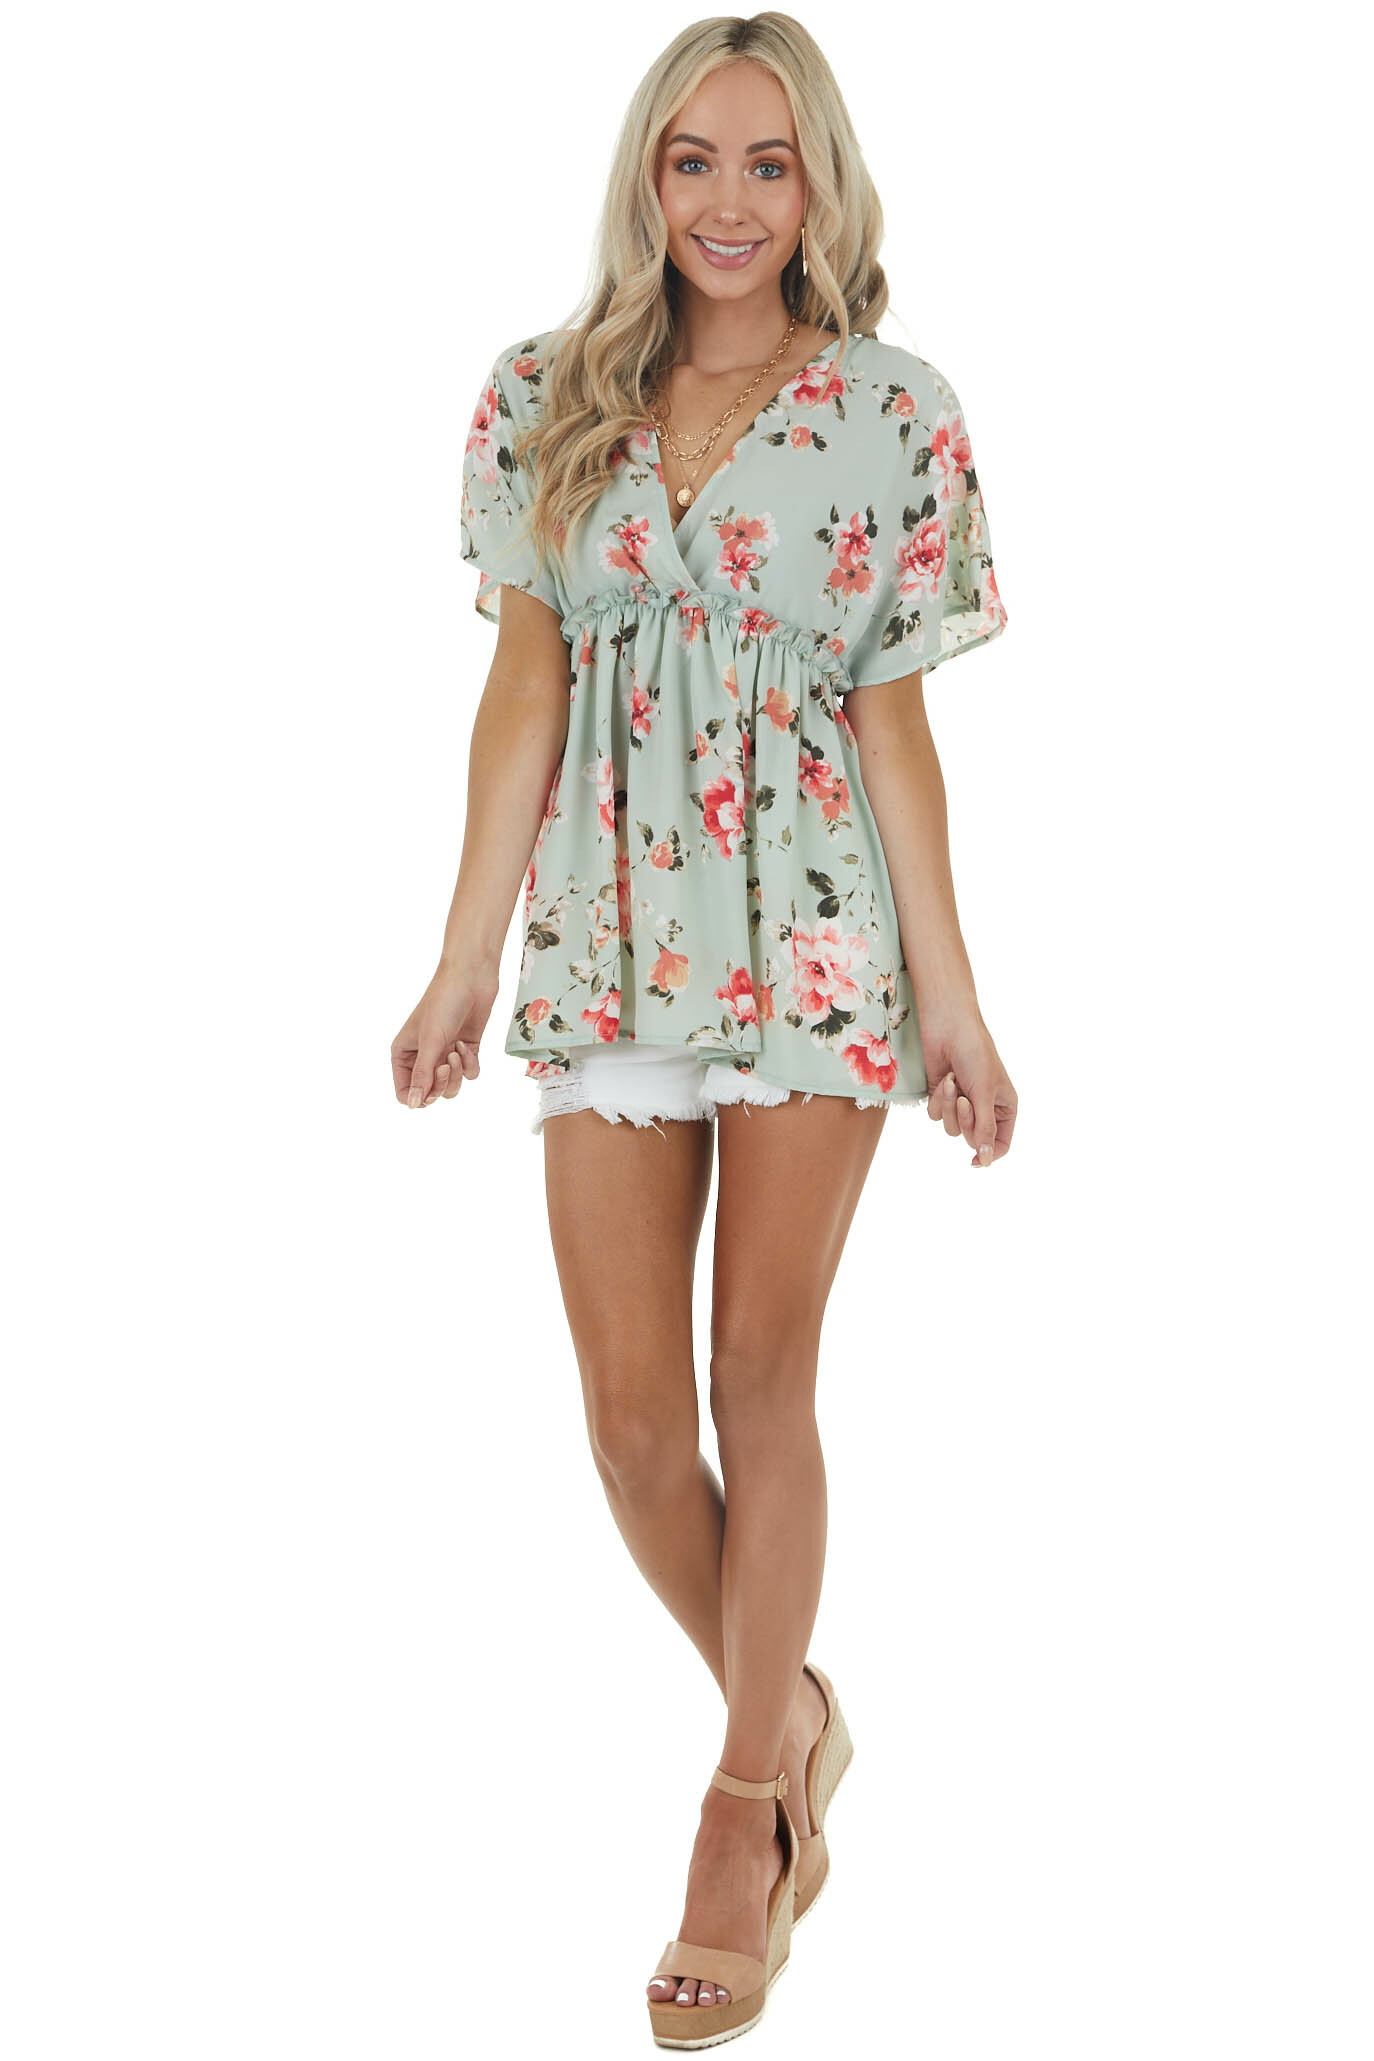 Seafoam Floral Print Surplice Baby Doll Top with Frill